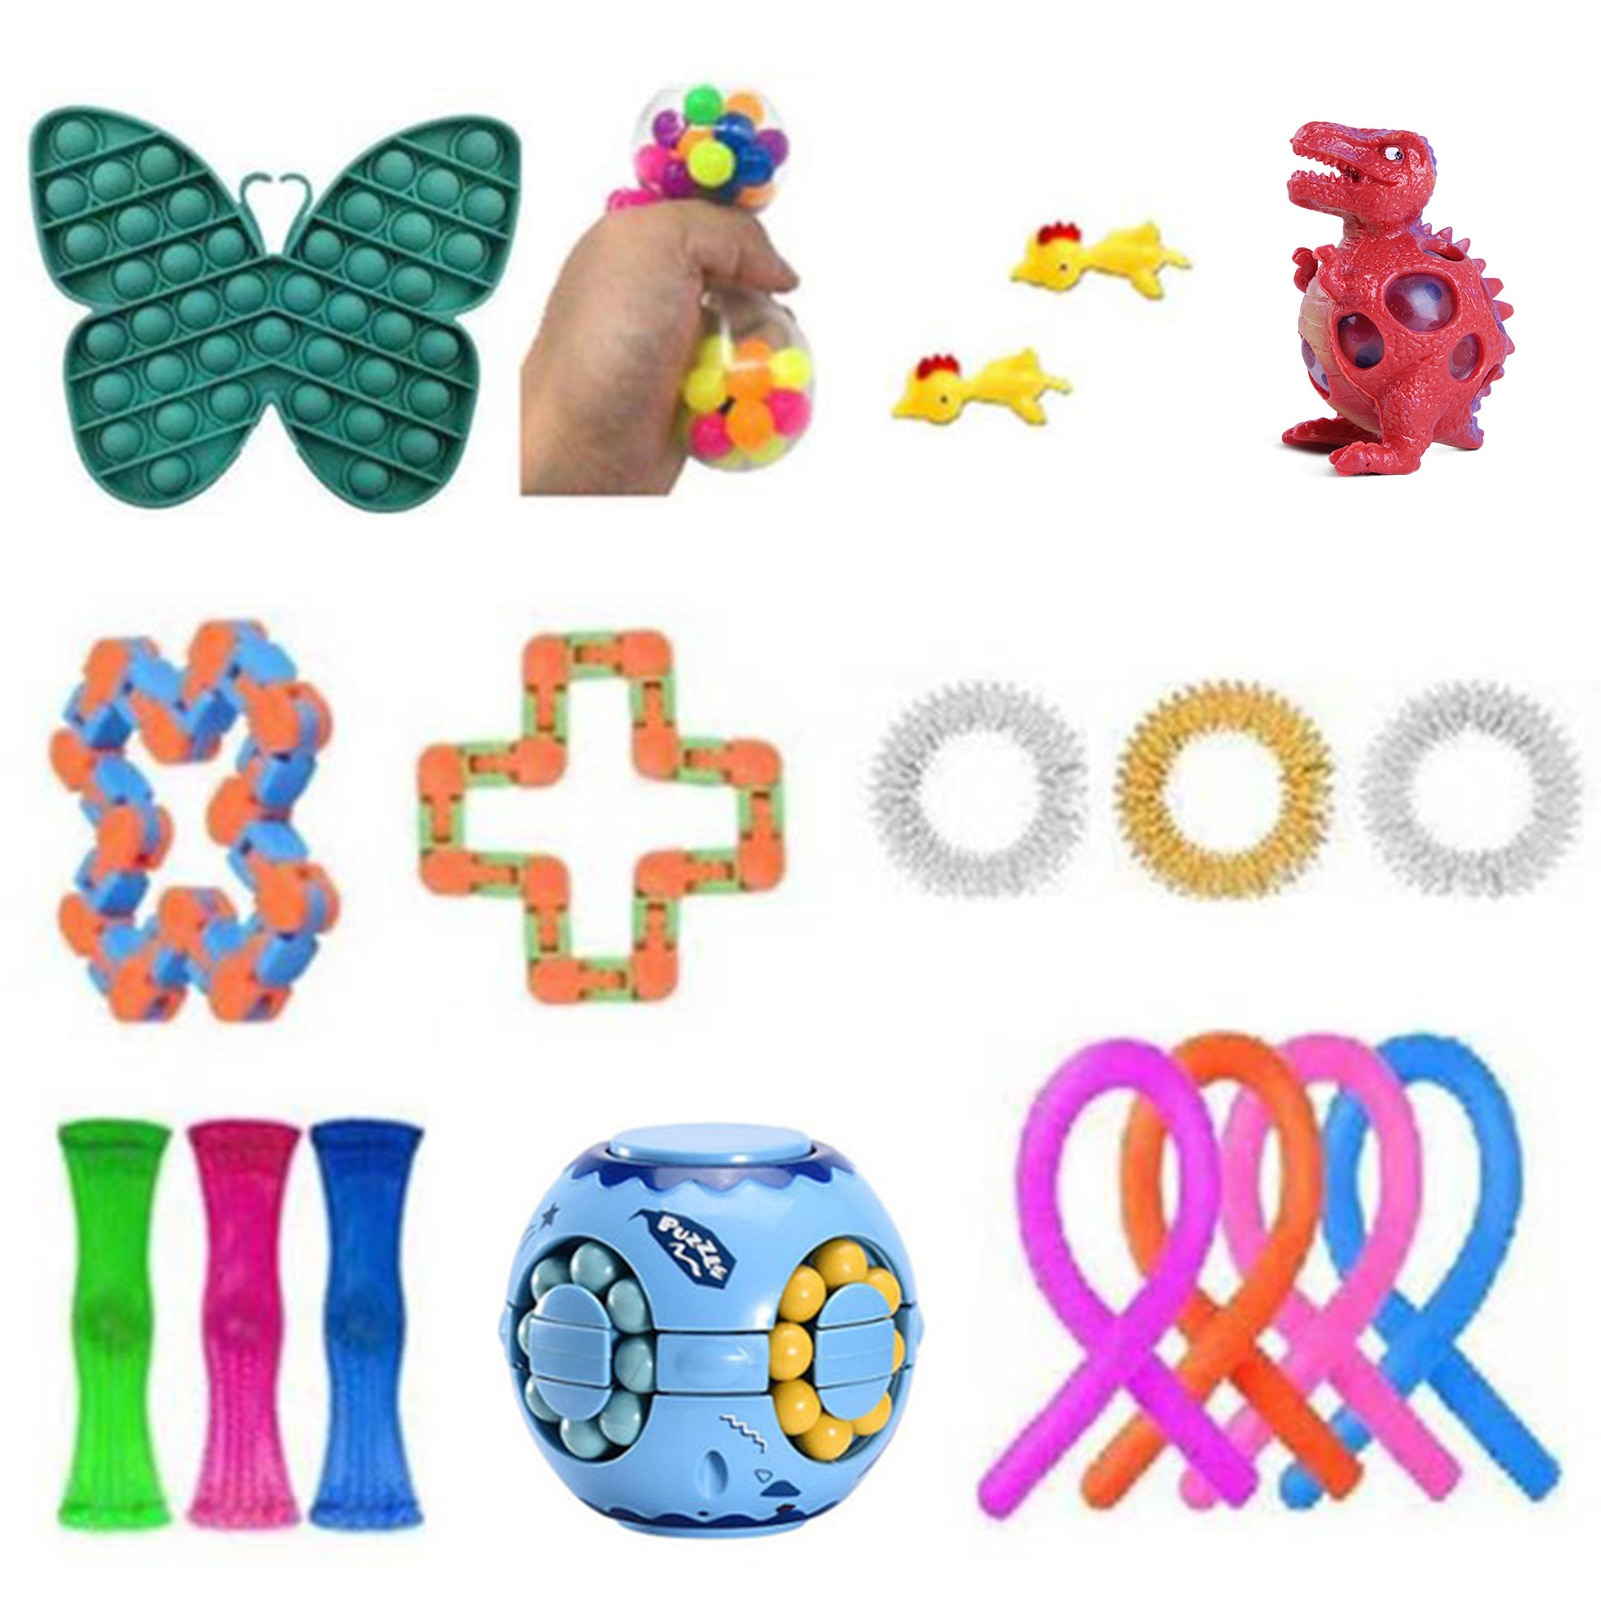 Decompression Sensory Fidget Toy Set Stress Relief Toy For Kids Adult Squeeze Toys For Kids Adults Anxiety Relief Stress Toy enlarge